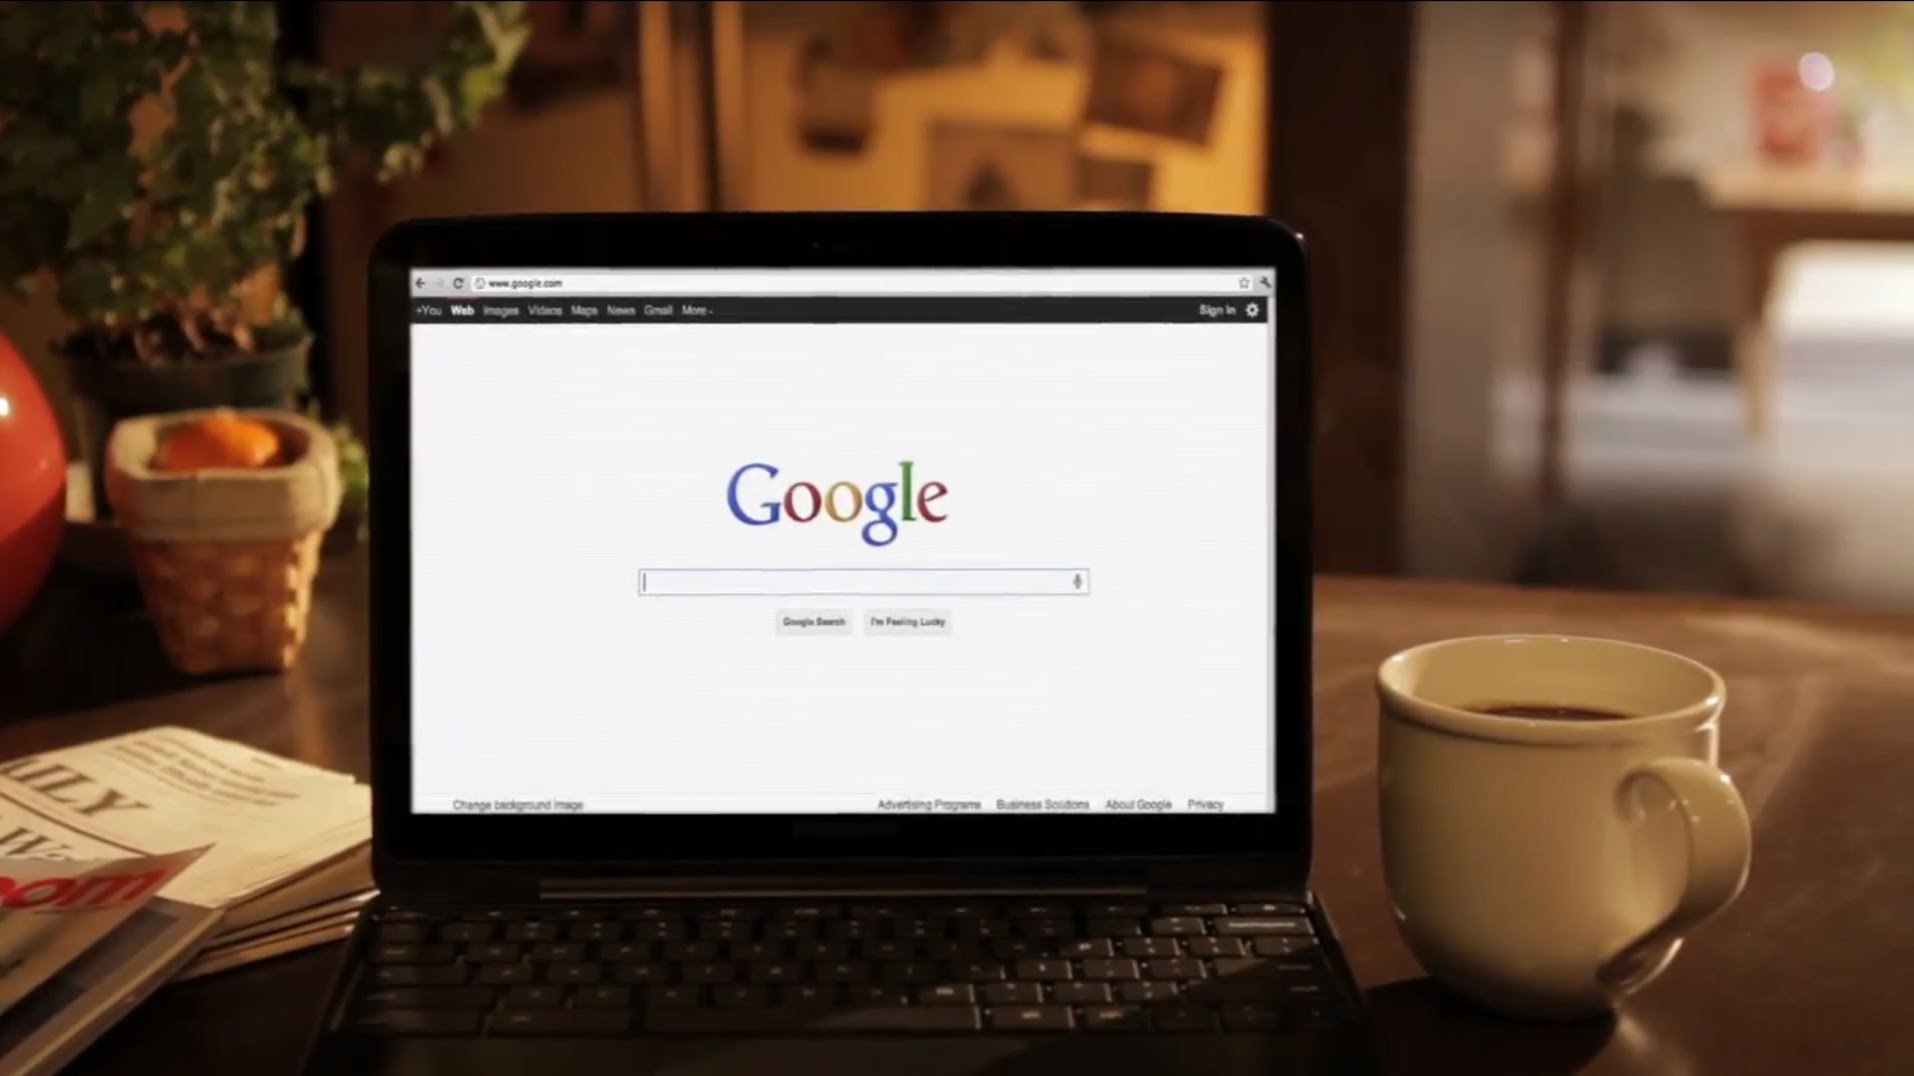 All the things you can do with Google search